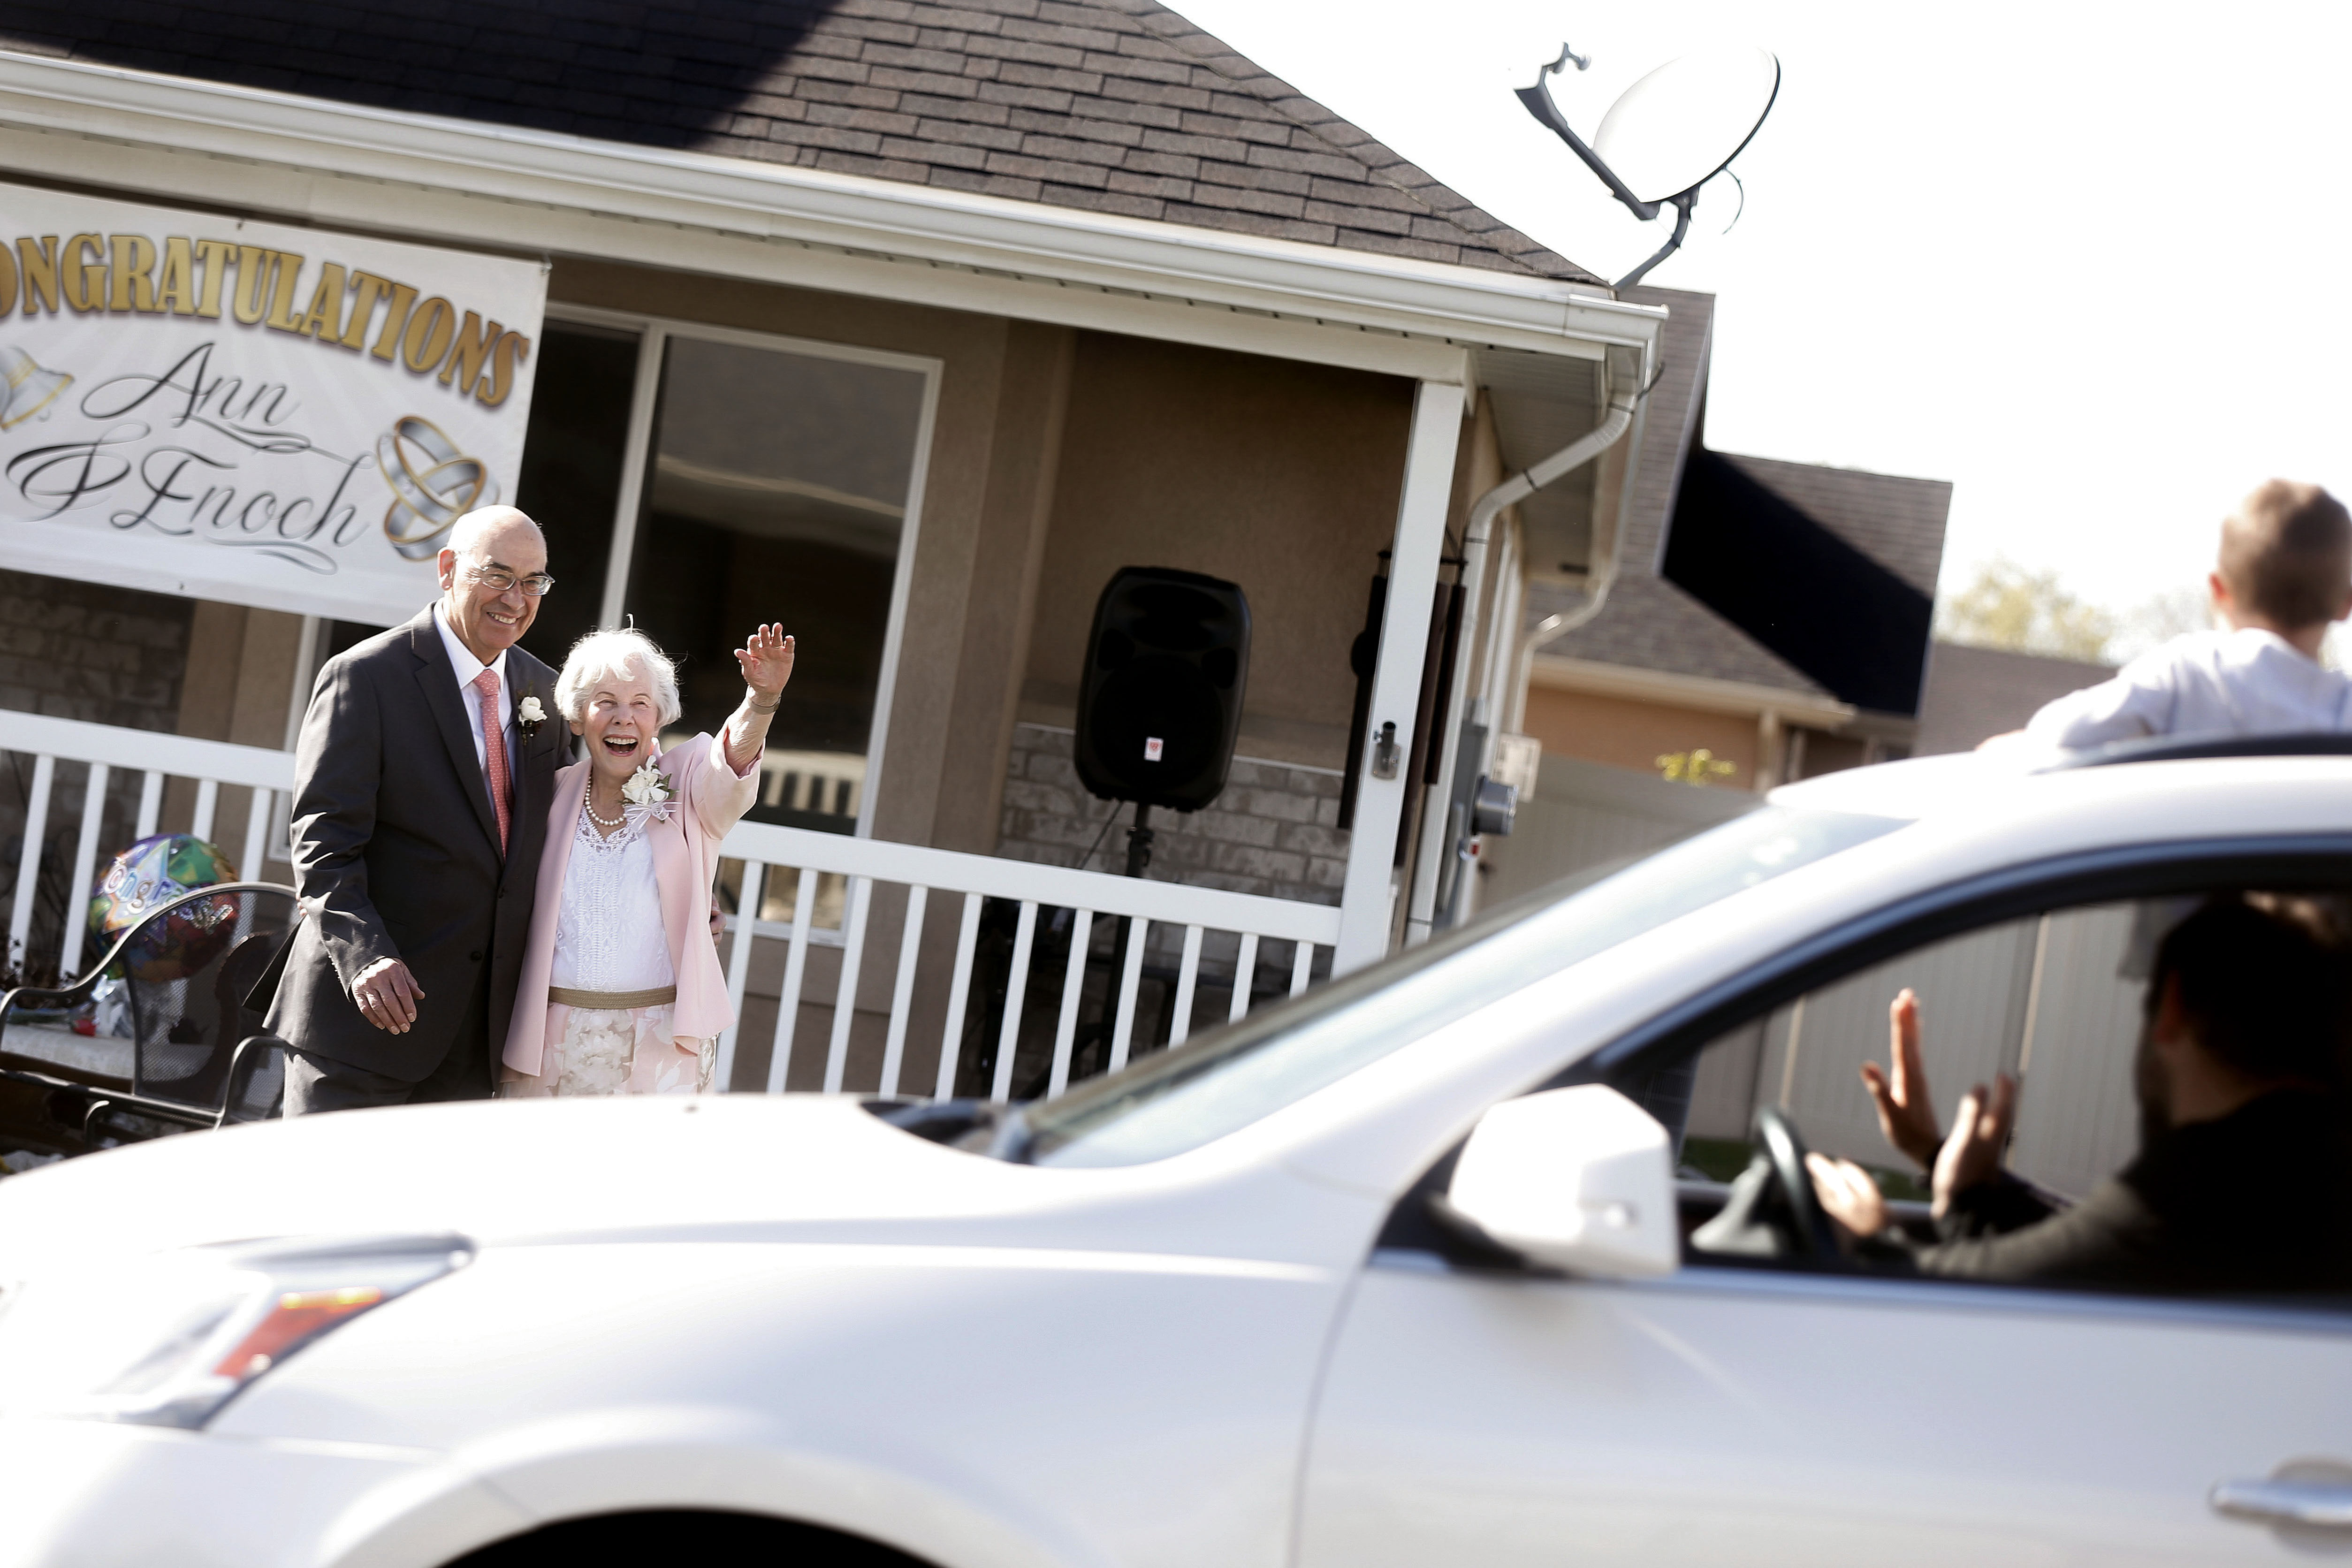 Enoch and Ann Bell wave to their children and grandchildren after their wedding ceremony in Kaysville on Friday, April 24, 2020.